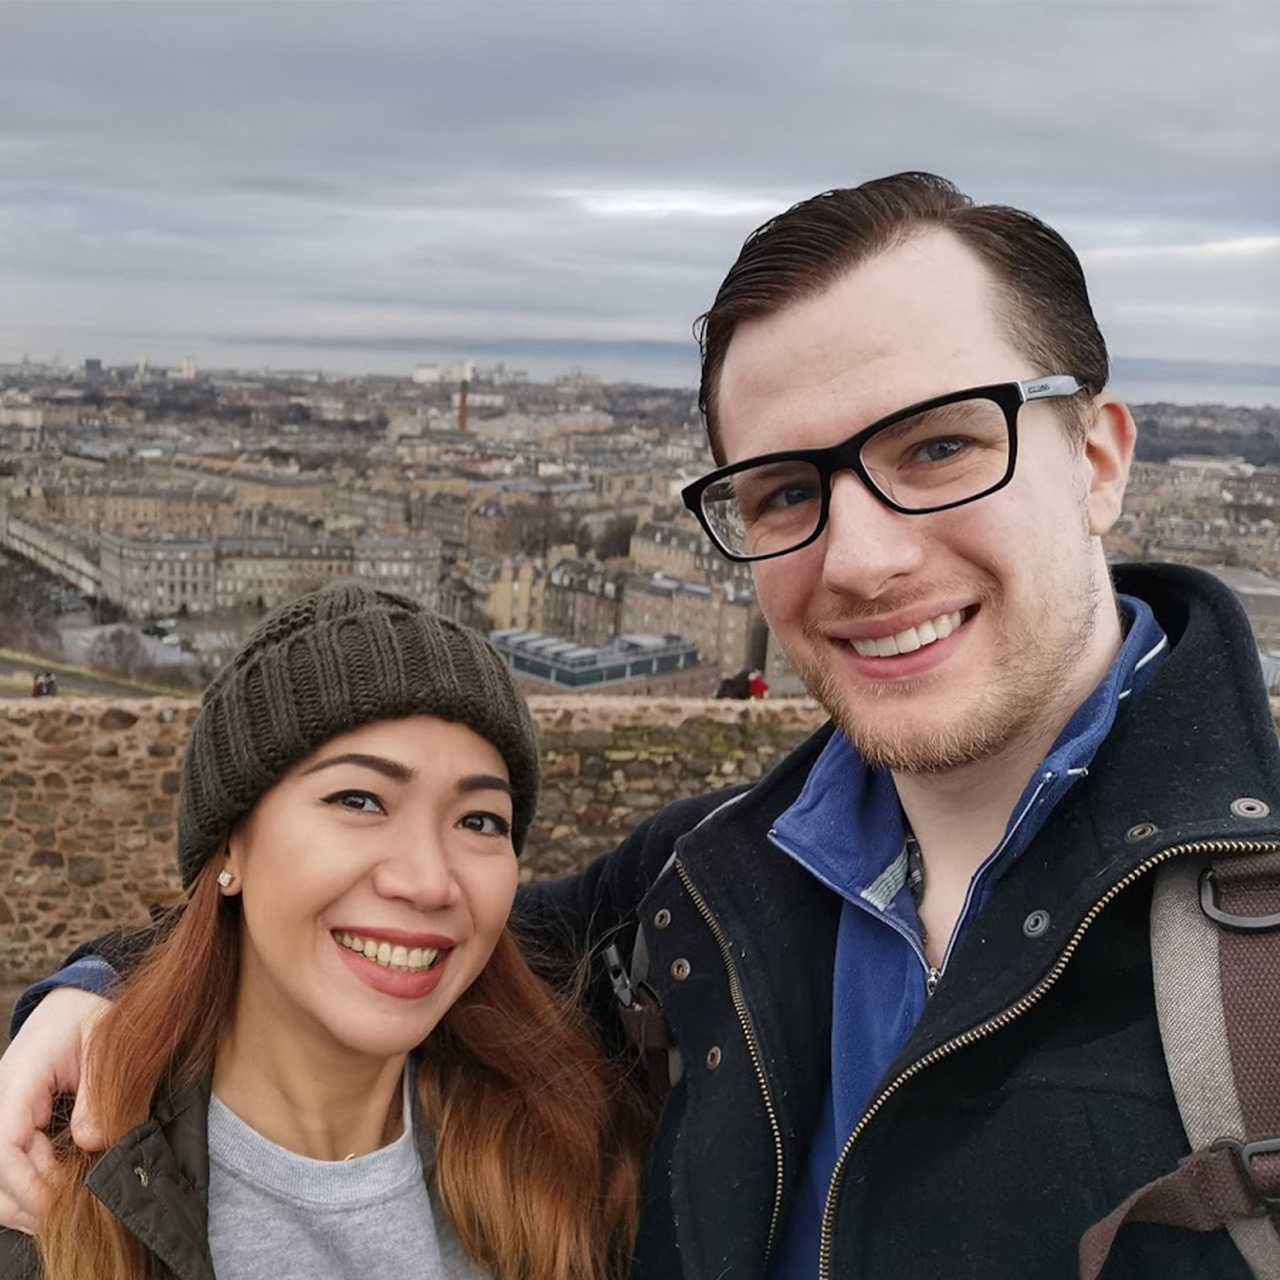 Picture of me and my wife in Edinburgh